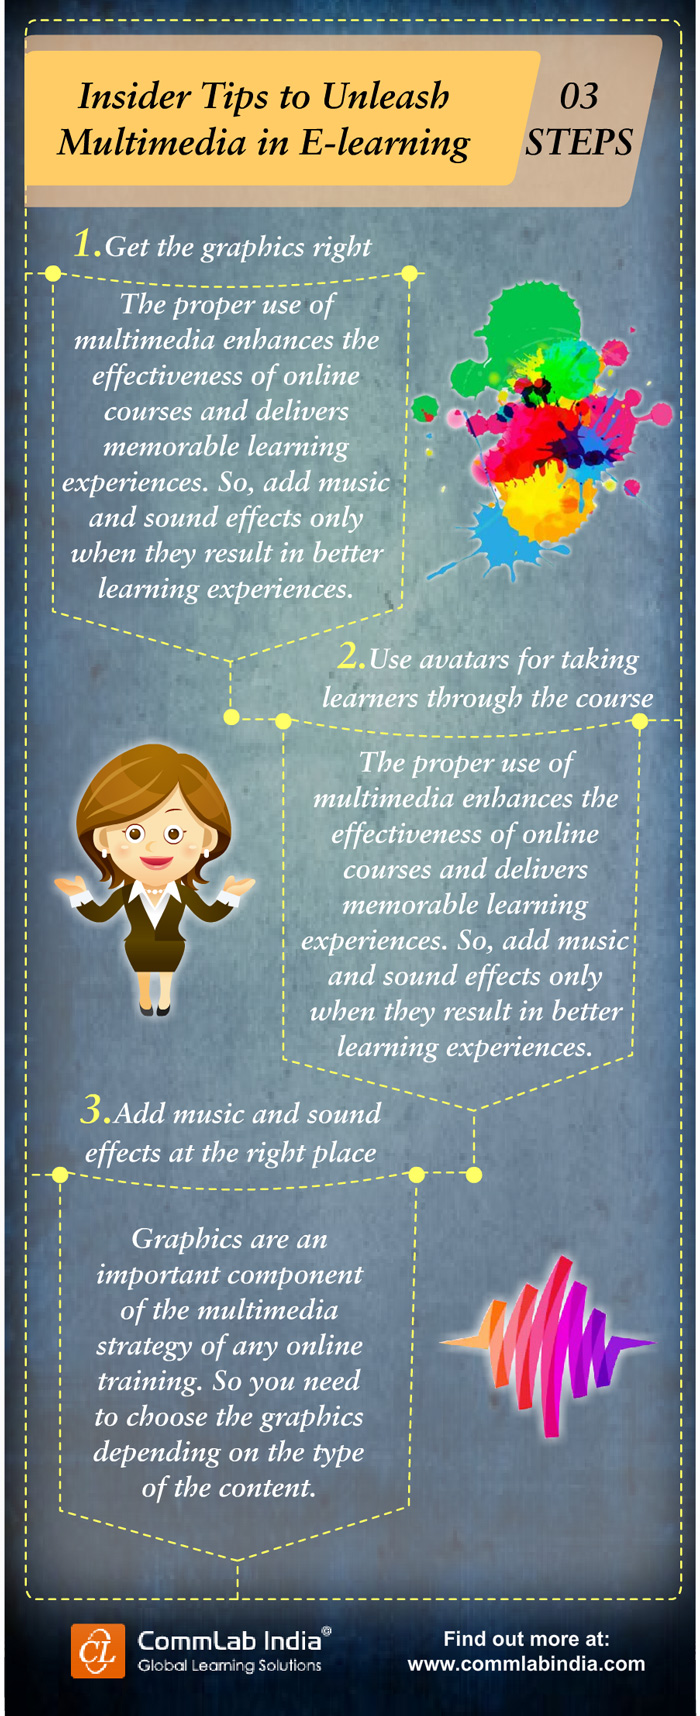 Insider Tips to Unleash Multimedia in E-learning [Infographic]